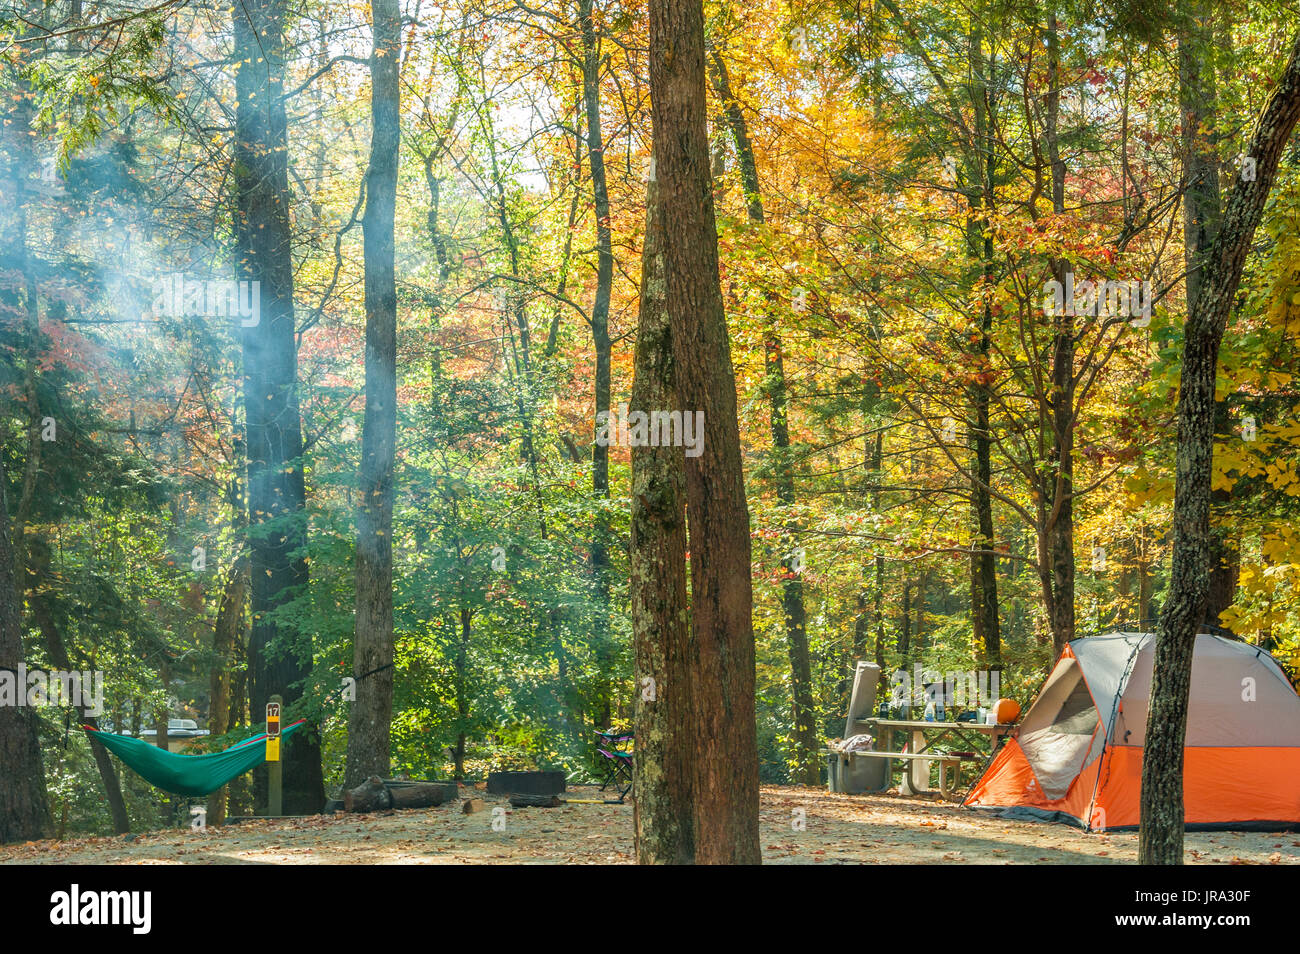 Tent camper resting in a hammock as campfire smoke catches sunlight amidst the trees on a beautiful Autumn morning in the Blue Ridge Mountains. (USA) - Stock Image